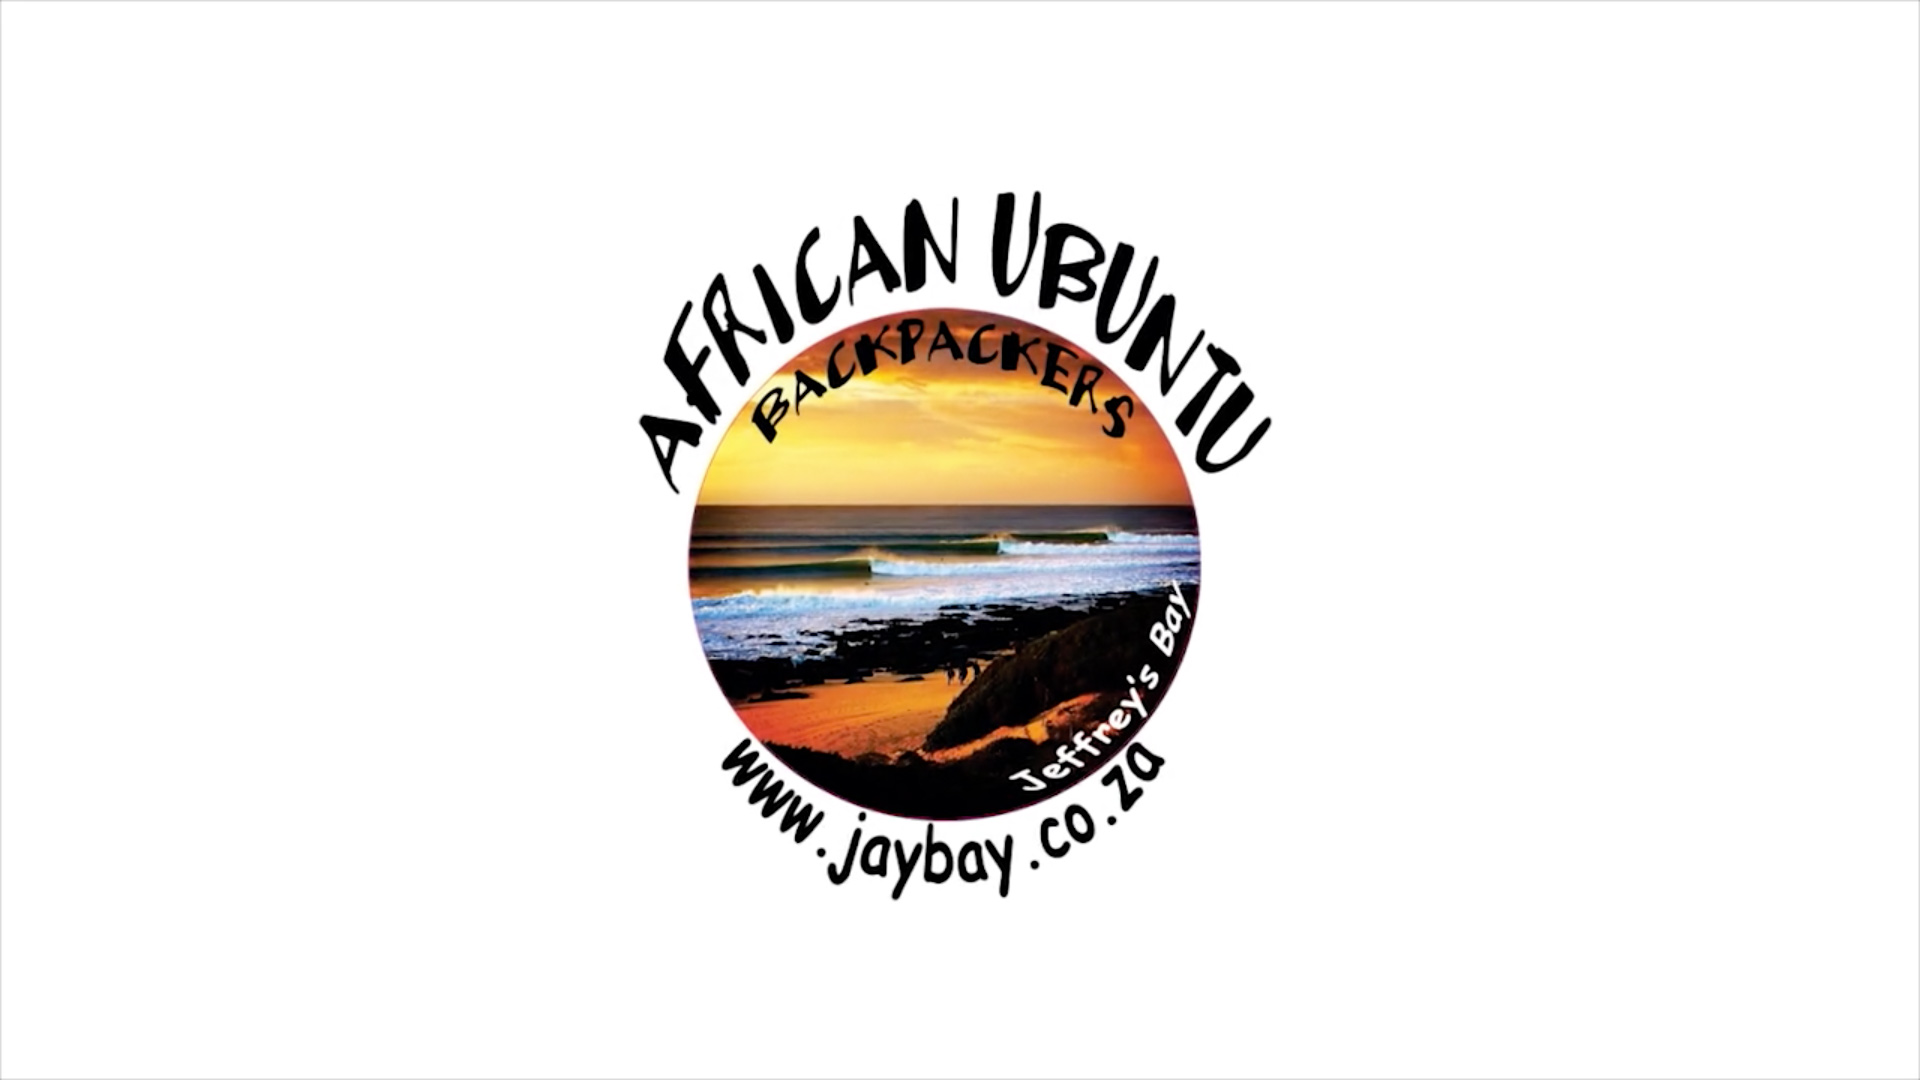 African Ubuntu Backpackers